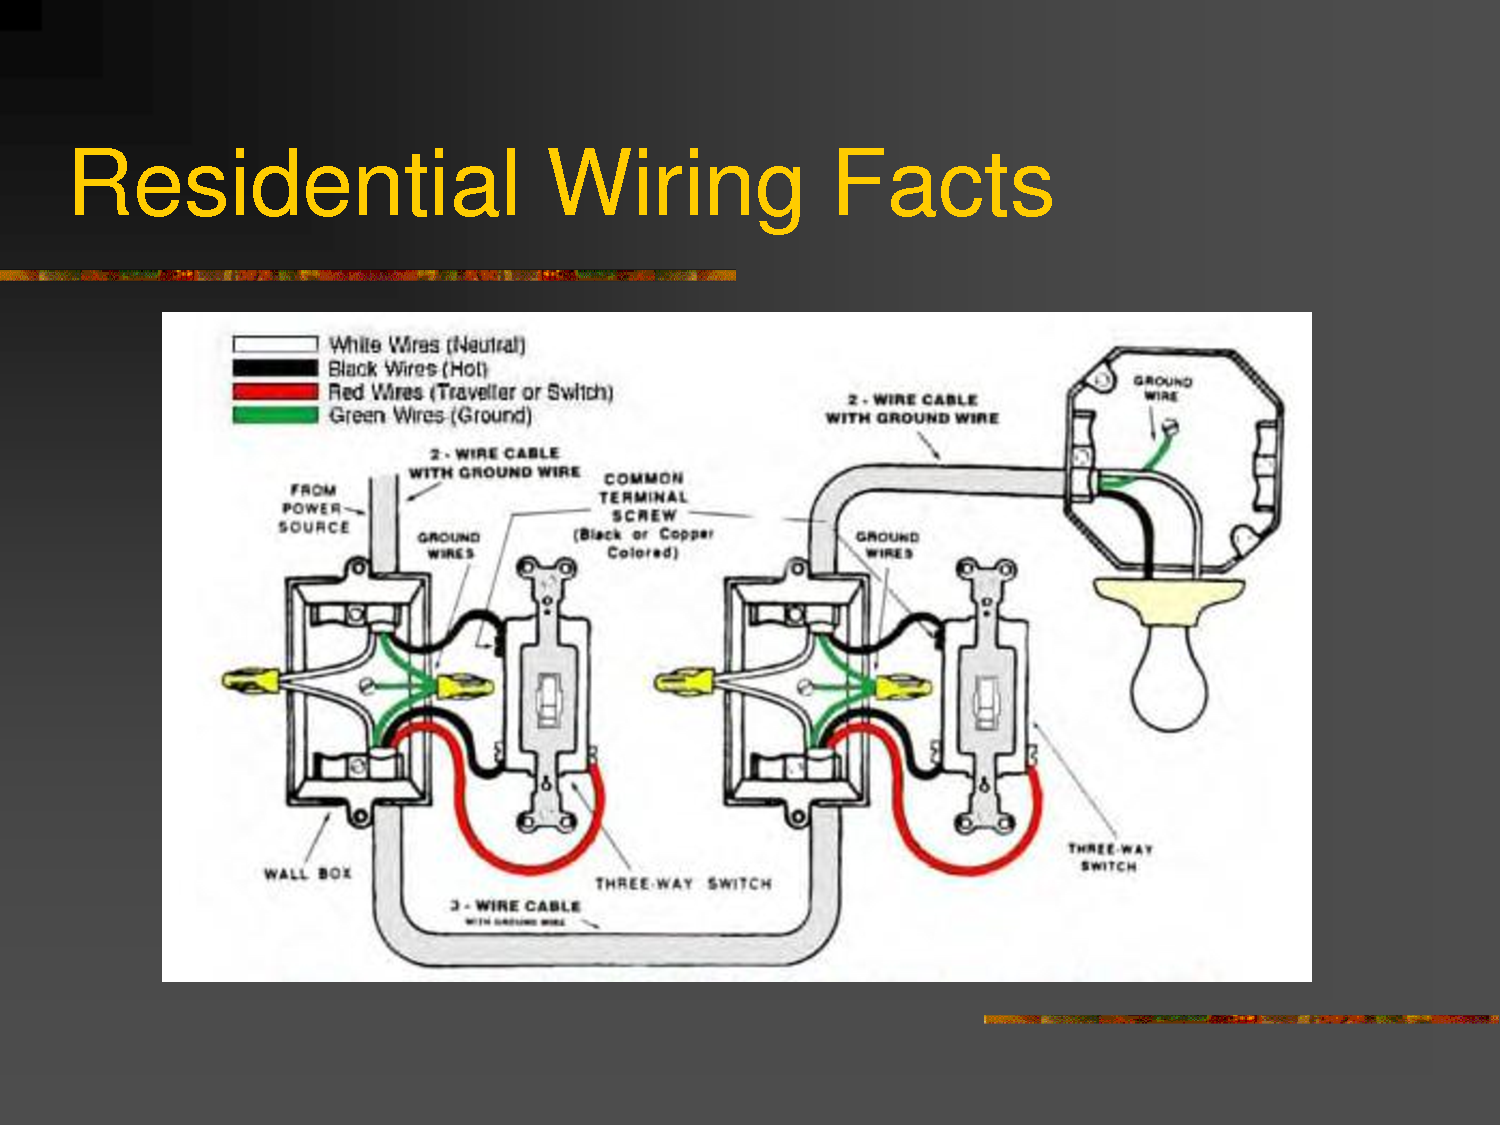 Light Switch Wiring Diagram Along With Electrical Wiring Ground Wire